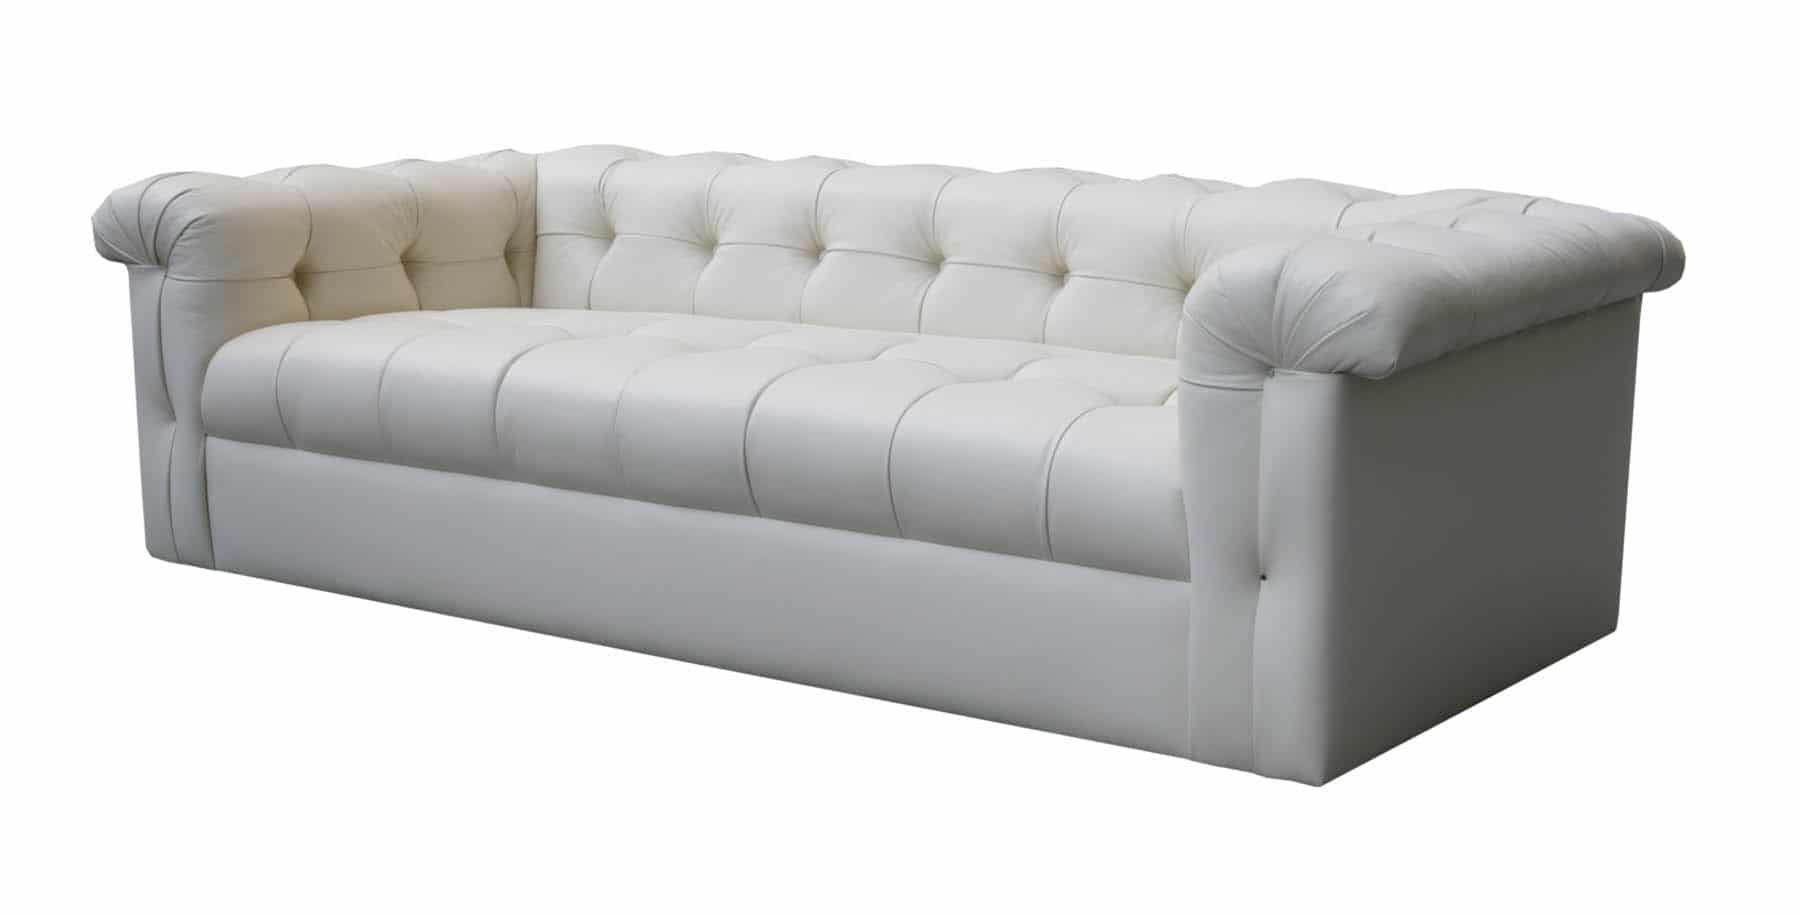 Edward Wormley Dunbar Six Foot Tufted Leather Sofa Todd Merrill